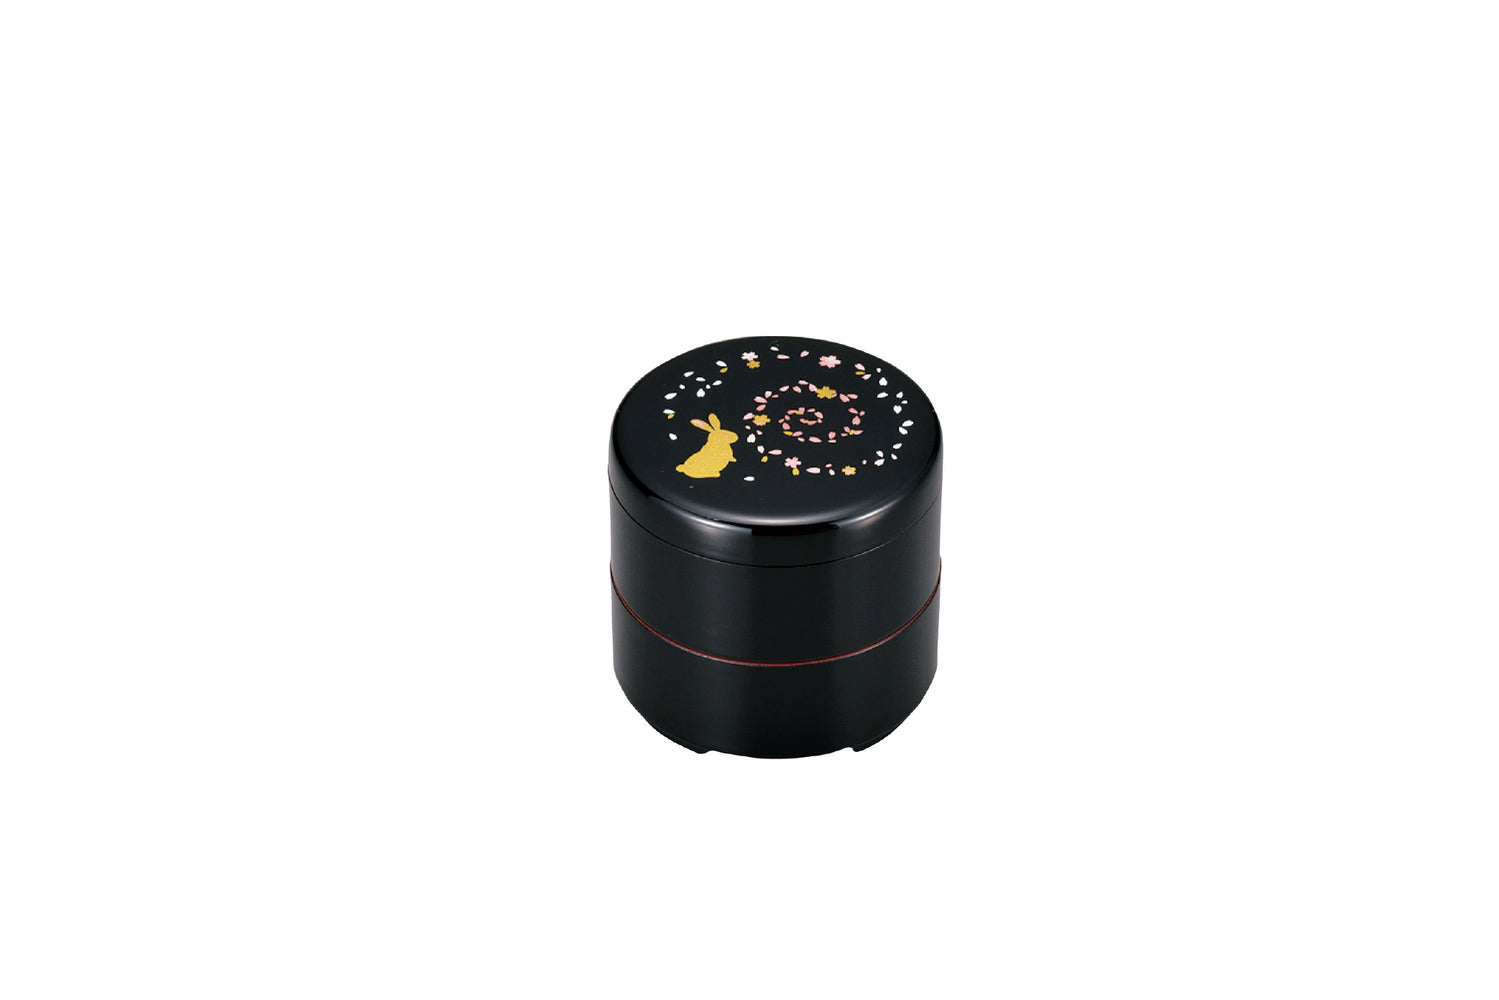 Usagi Round Bento Small | Black by Hakoya - Bento&co Japanese Bento Lunch Boxes and Kitchenware Specialists